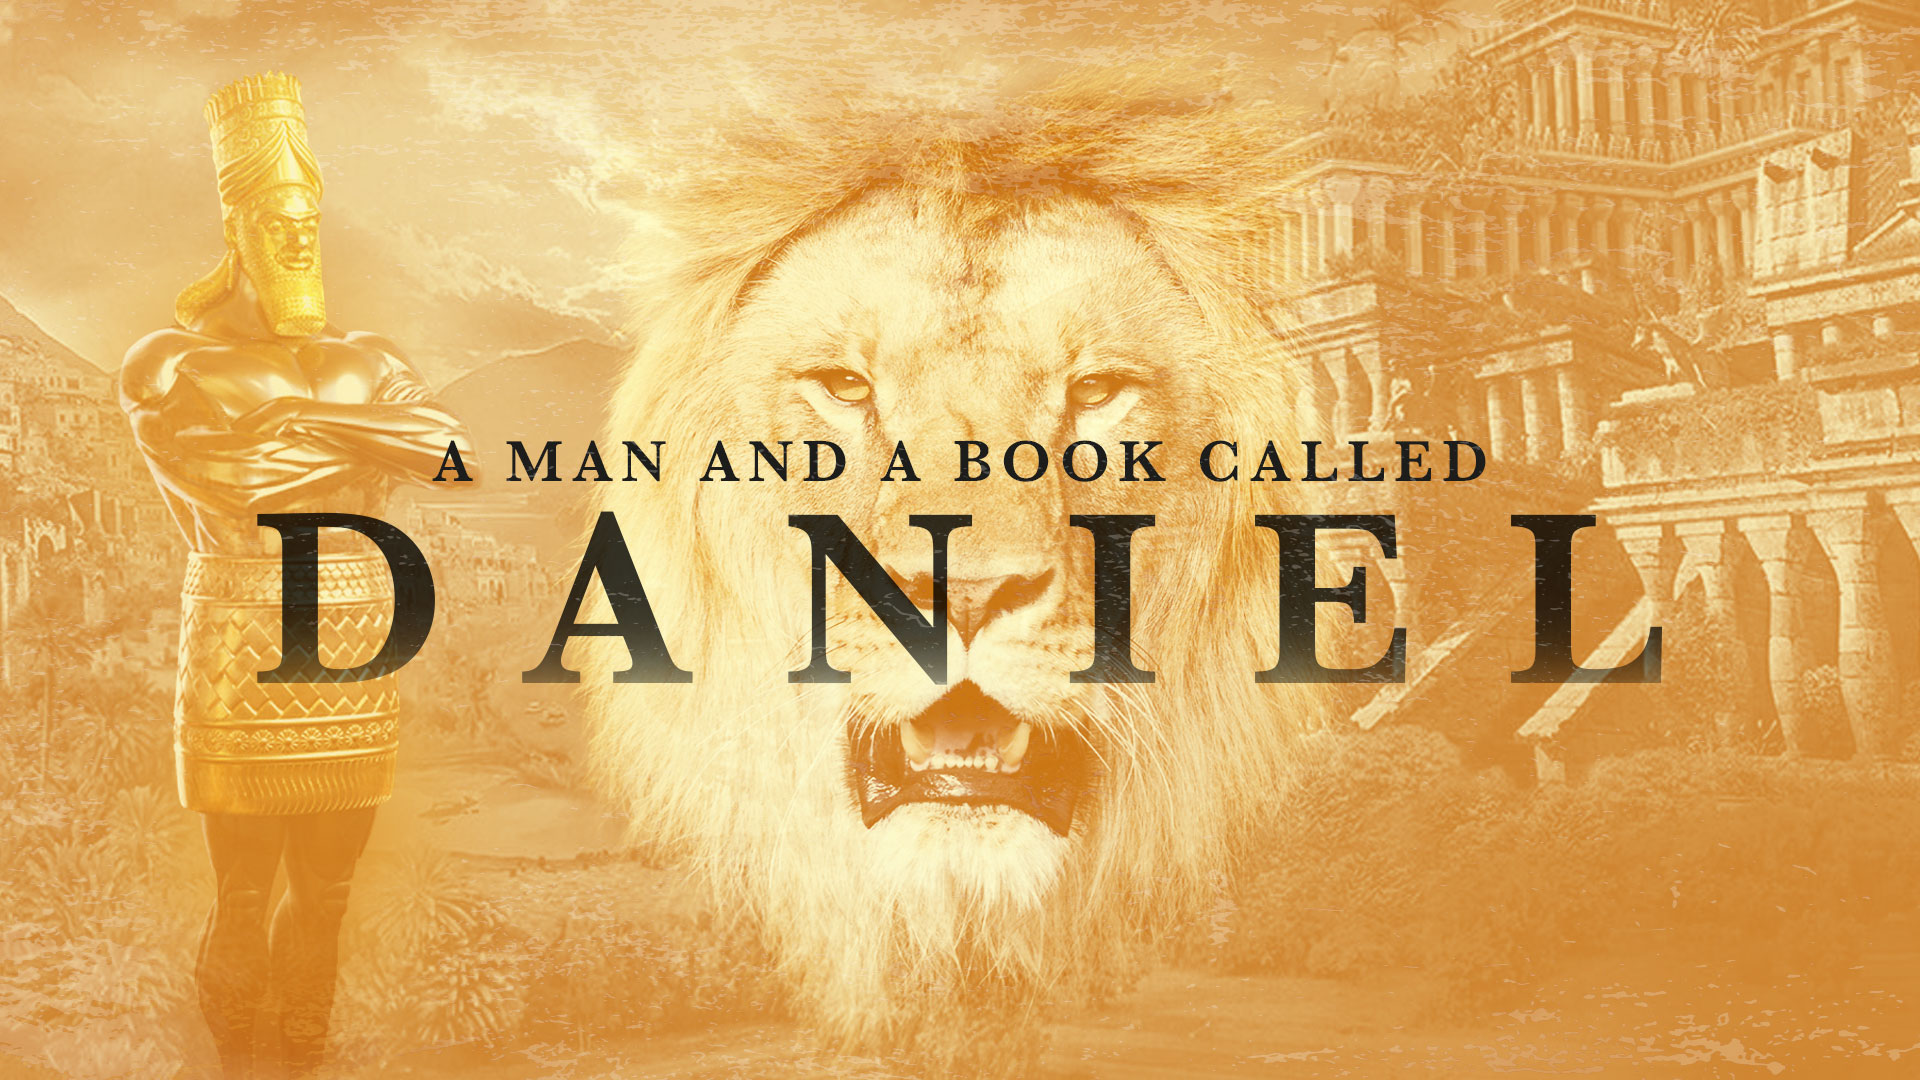 A book and a man called Daniel (Pt 2) Living godly in godless Babylon